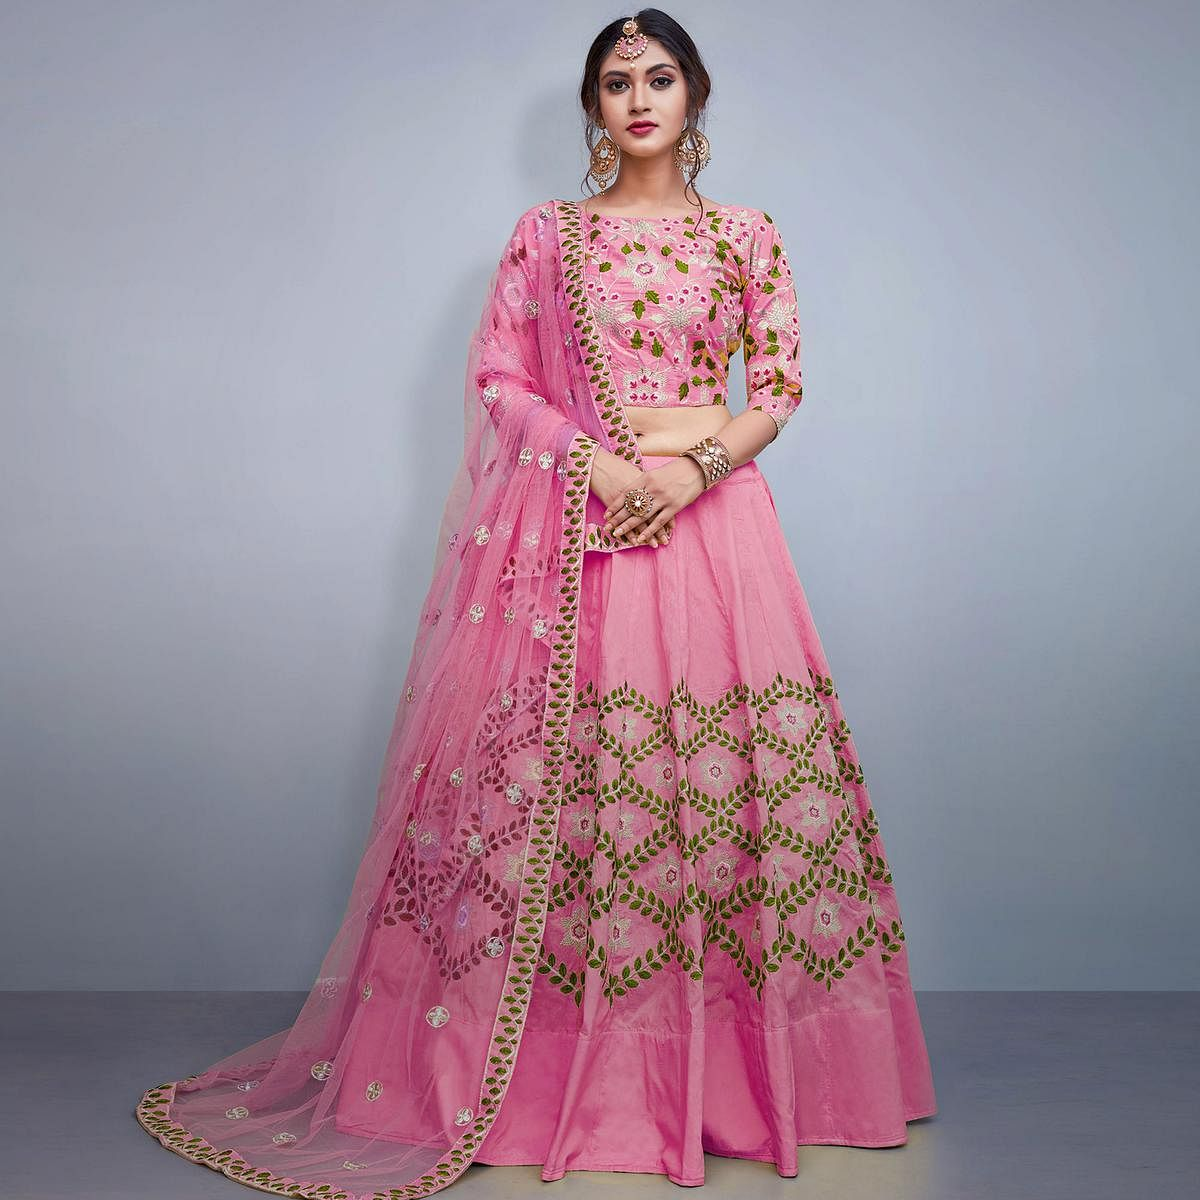 3f90137204 Buy Starring Pink Colored Party Wear Fancy Tapeta Silk Lehenga Choli For  womens online India, Best Prices, Reviews - Peachmode